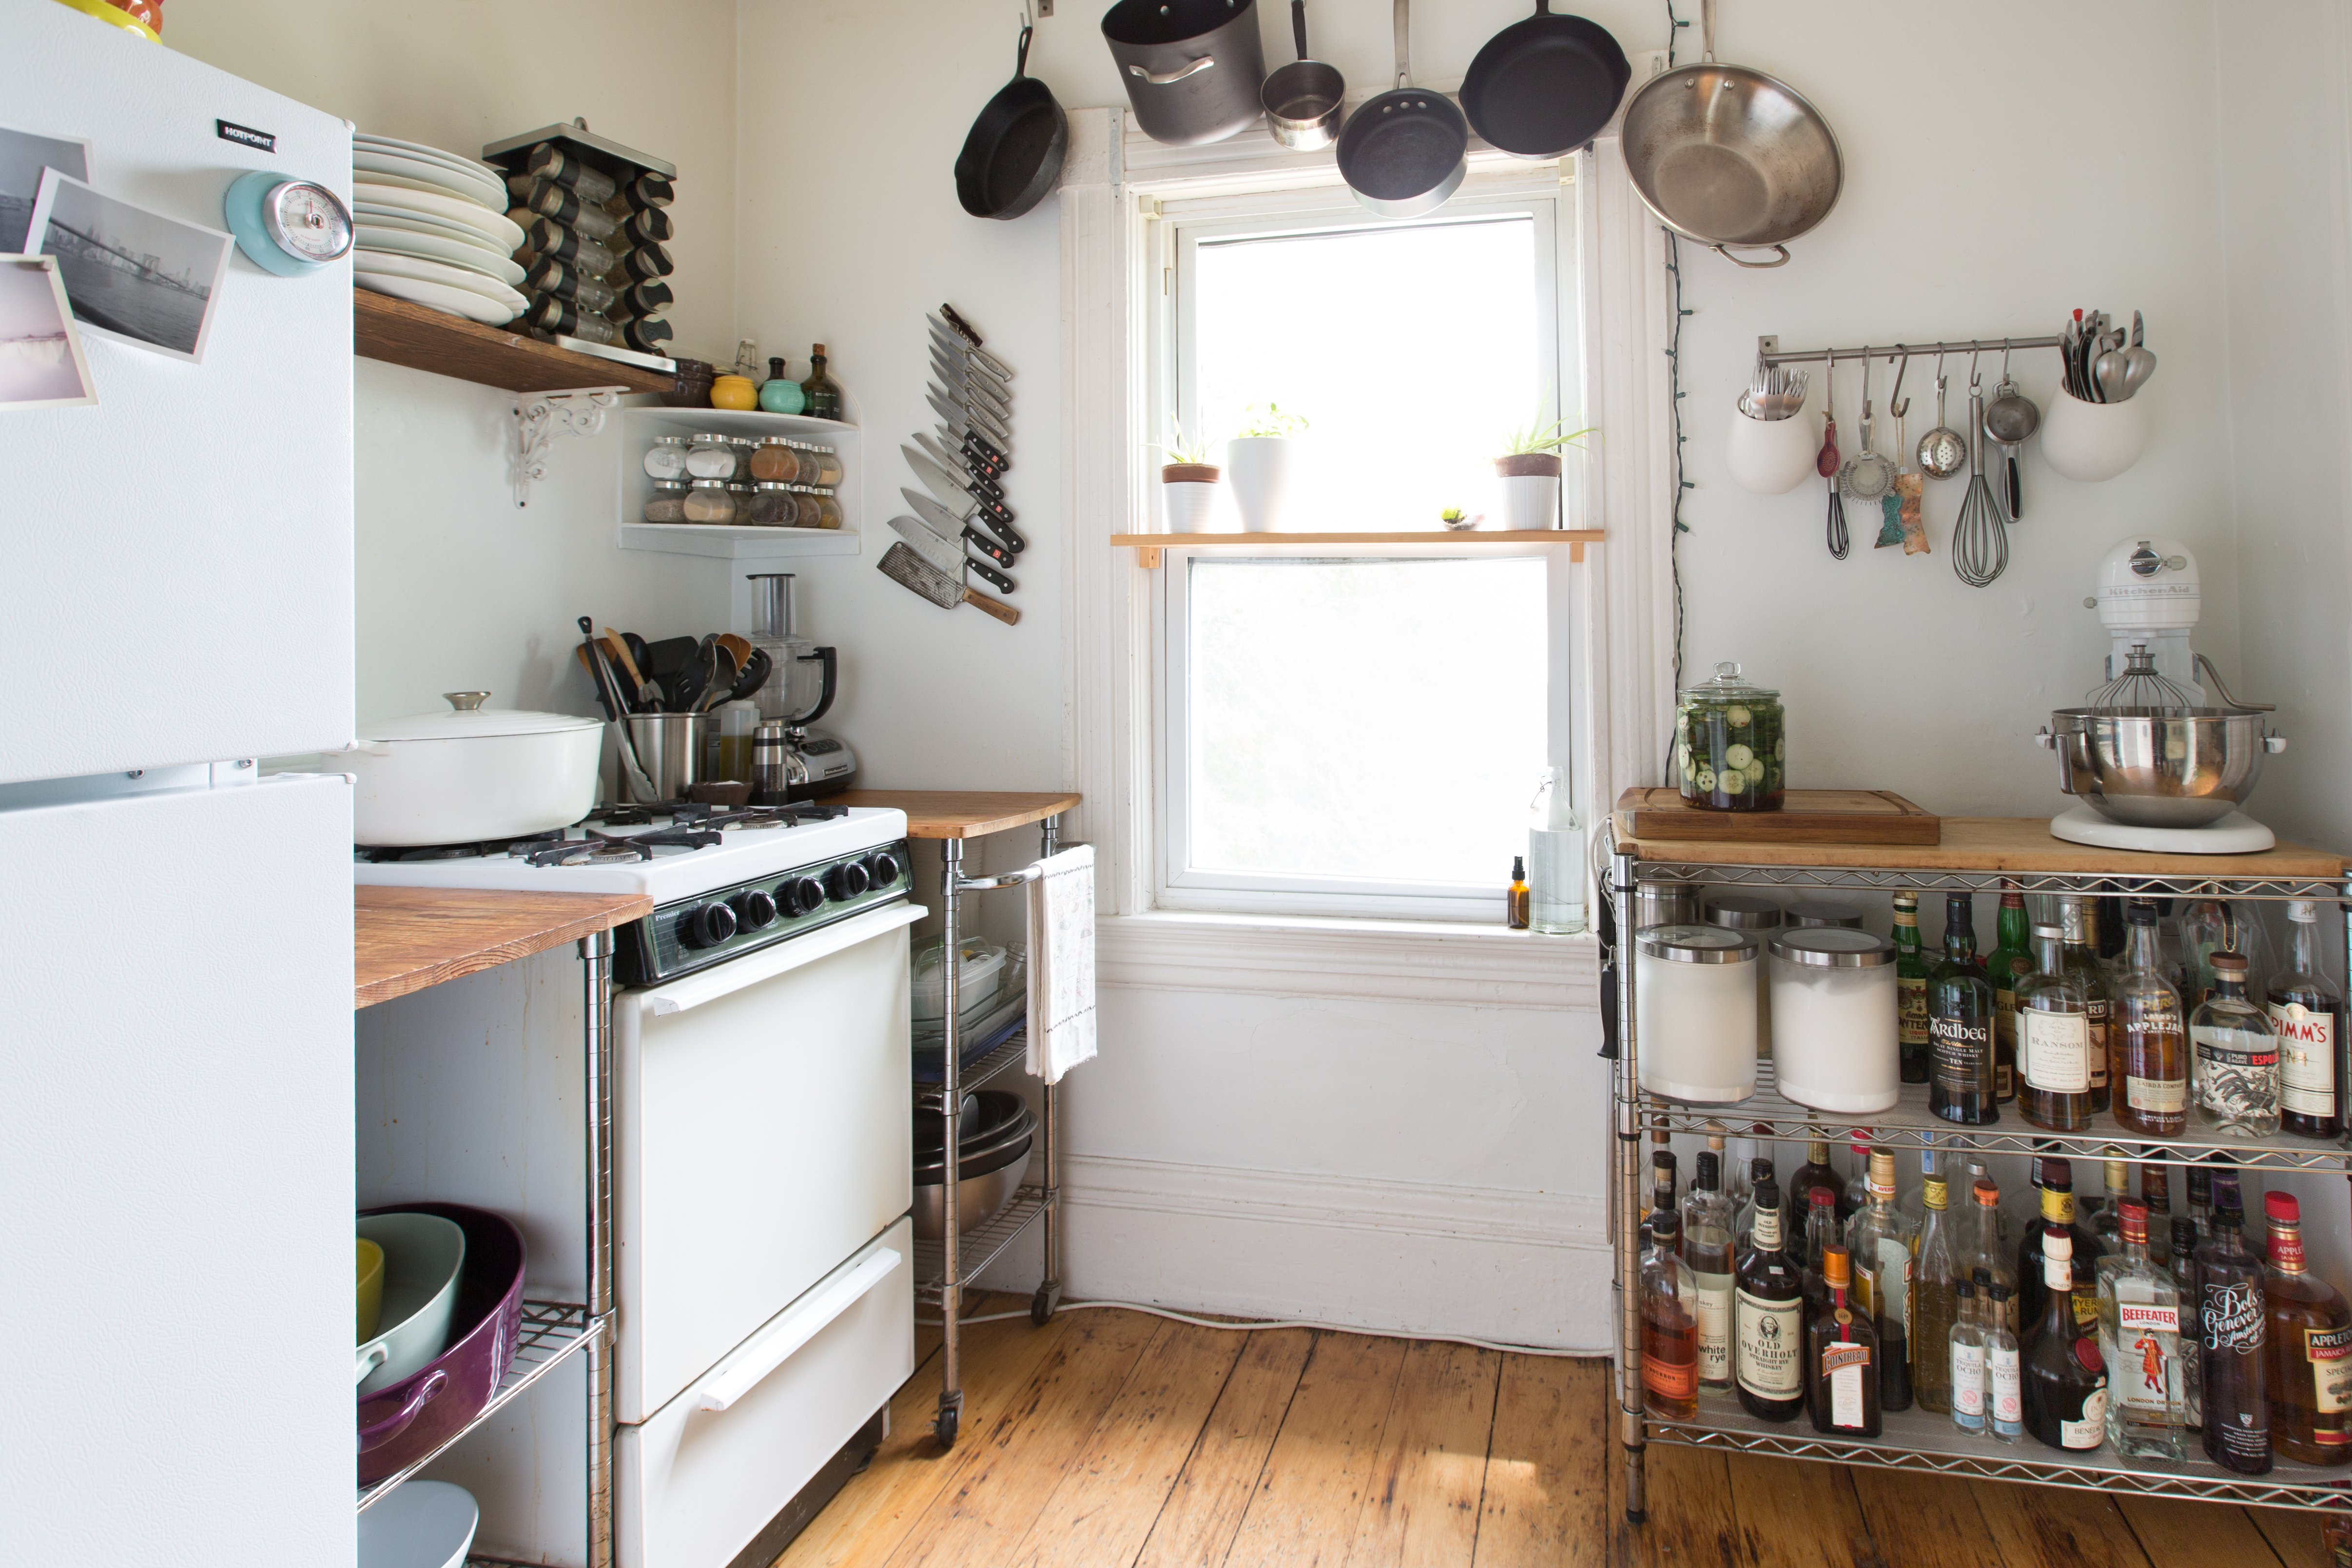 10 Of The Smartest Small Kitchens We've Ever Seen | Kitchn